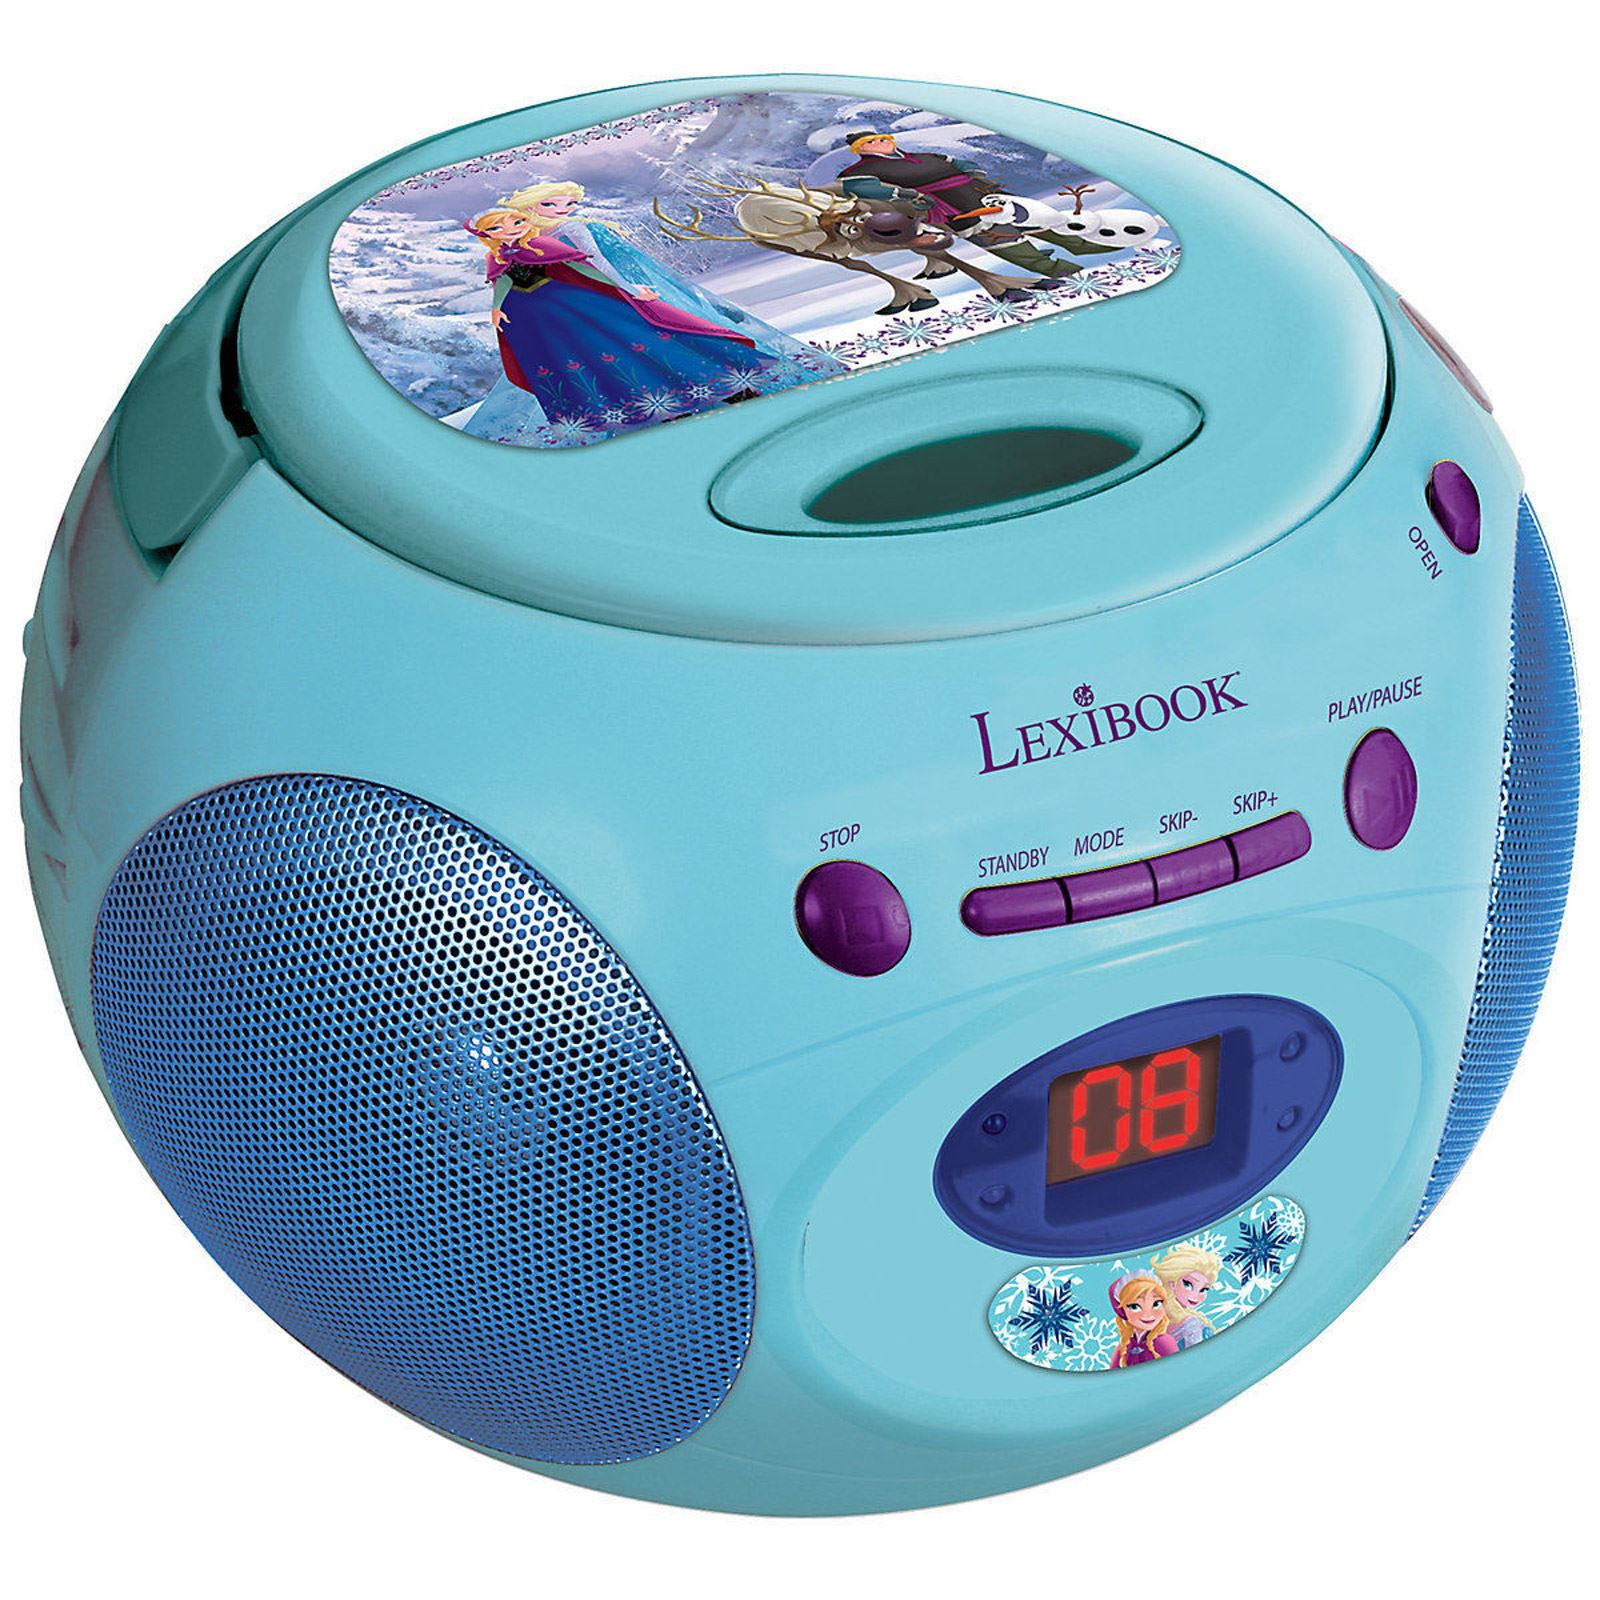 Radio-cd-player Für Badezimmer Disney Frozen Radio Cd Player New By Lexibook Kids Ebay